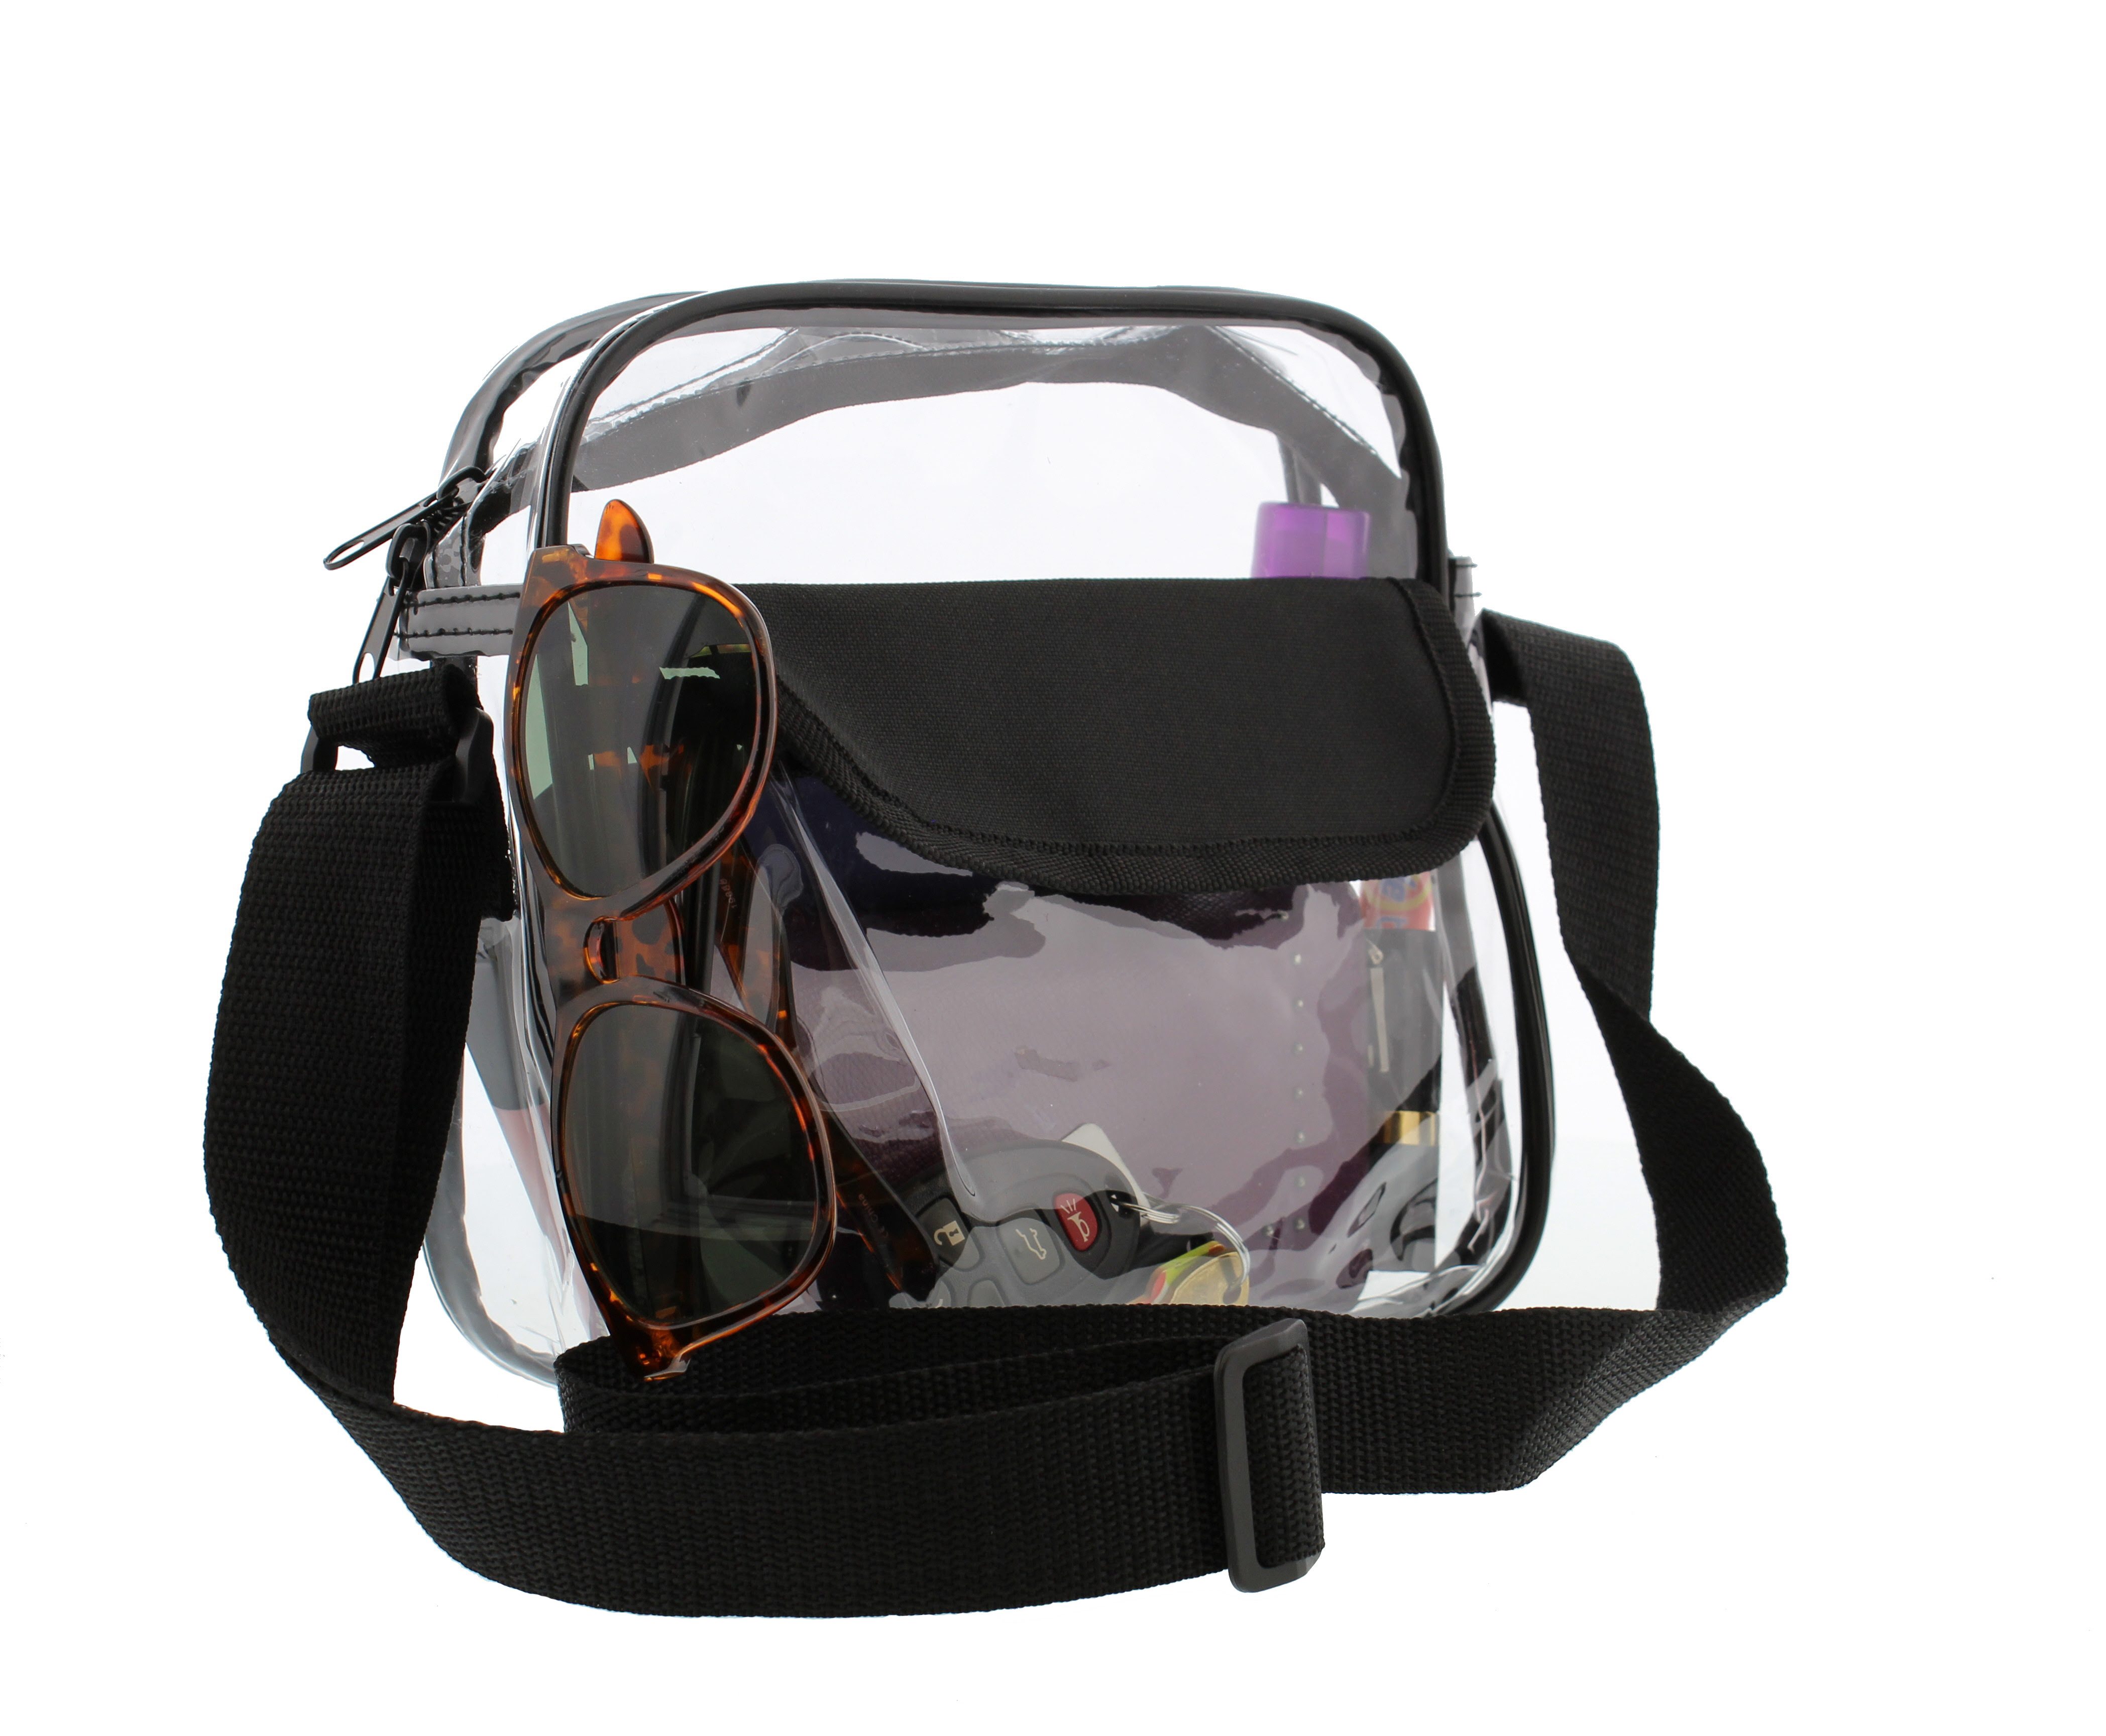 Clear Purse NFL Stadium Approved Bag with Zipper and Shoulder Strap  eBay